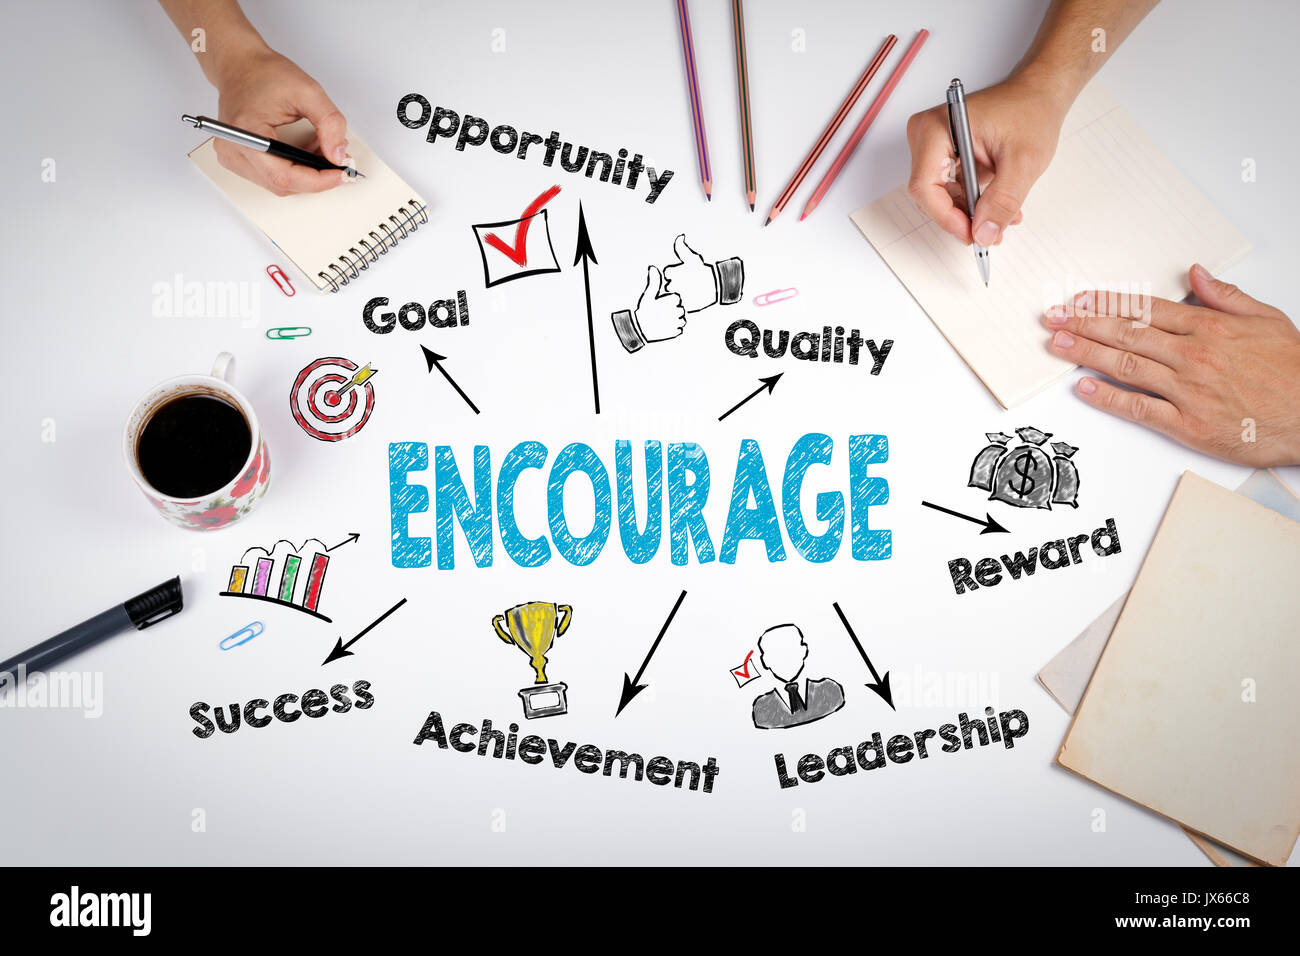 Encourage Concept. The meeting at the white office table. - Stock Image